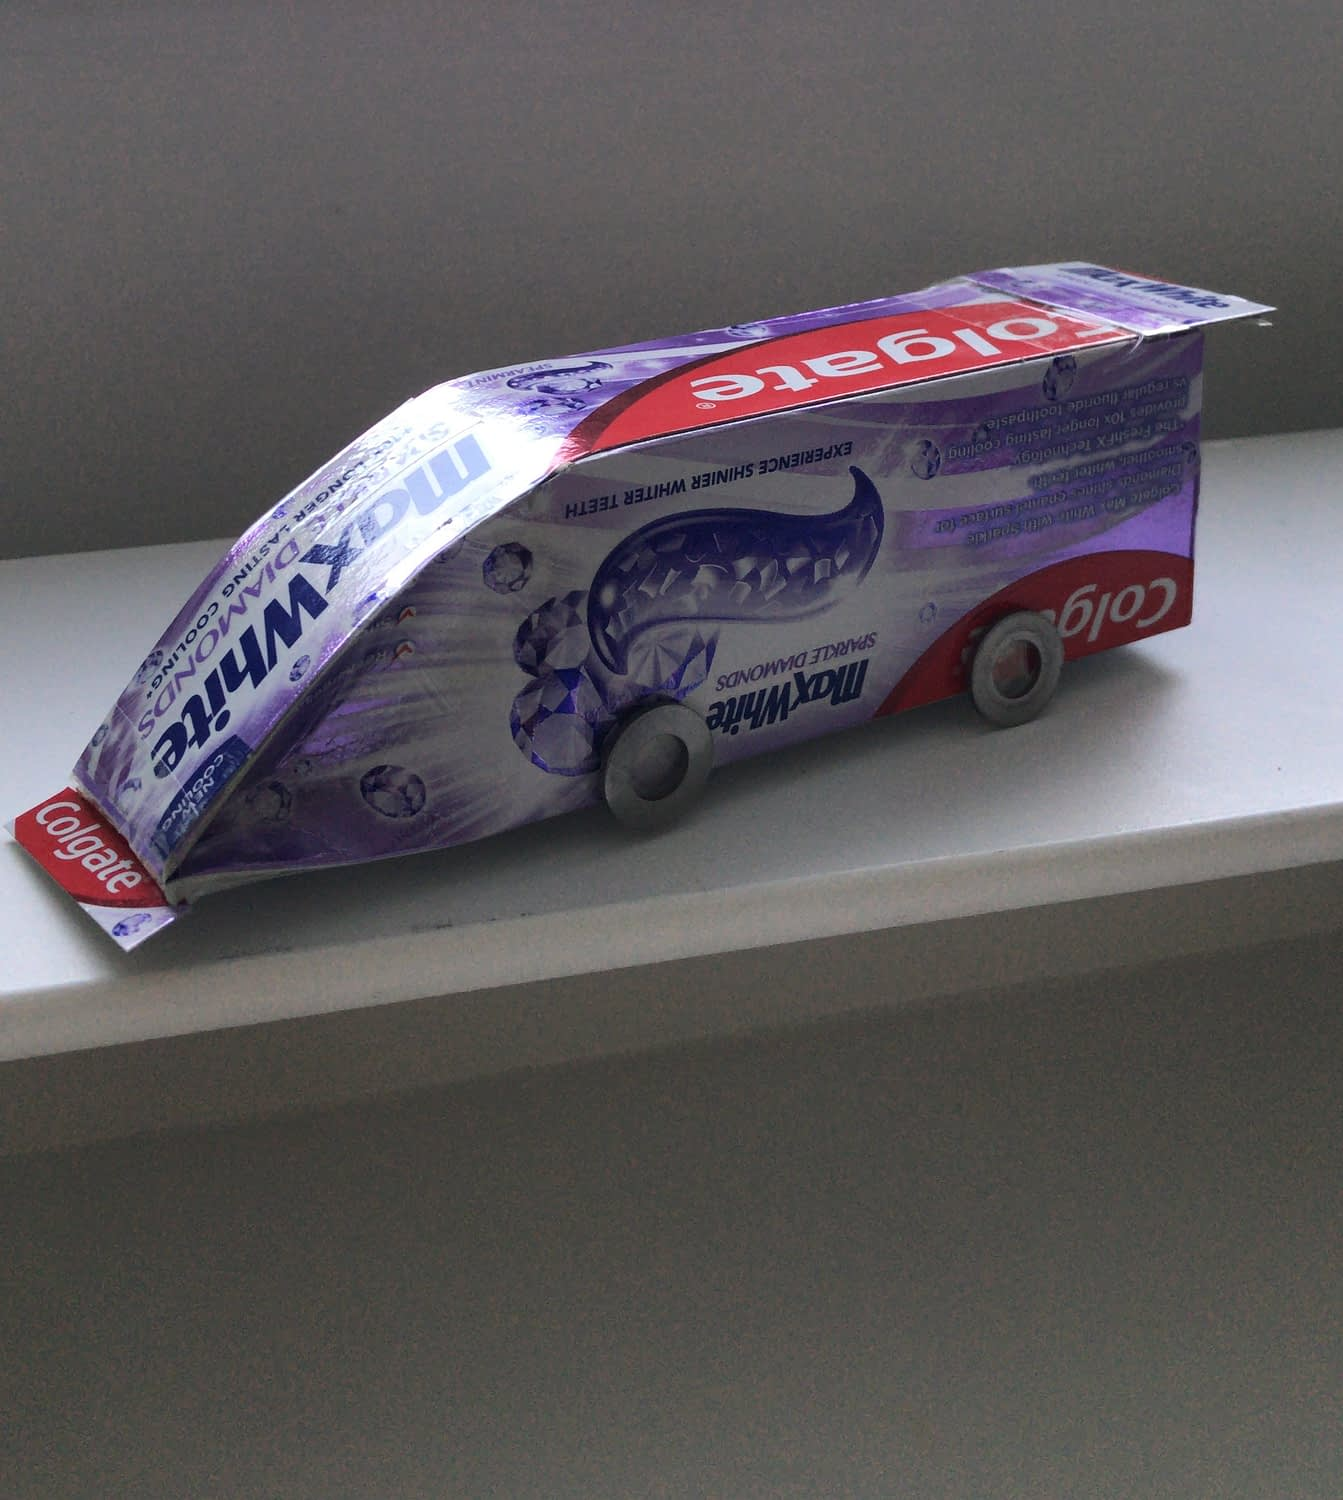 Toothpaste box turned into a race car